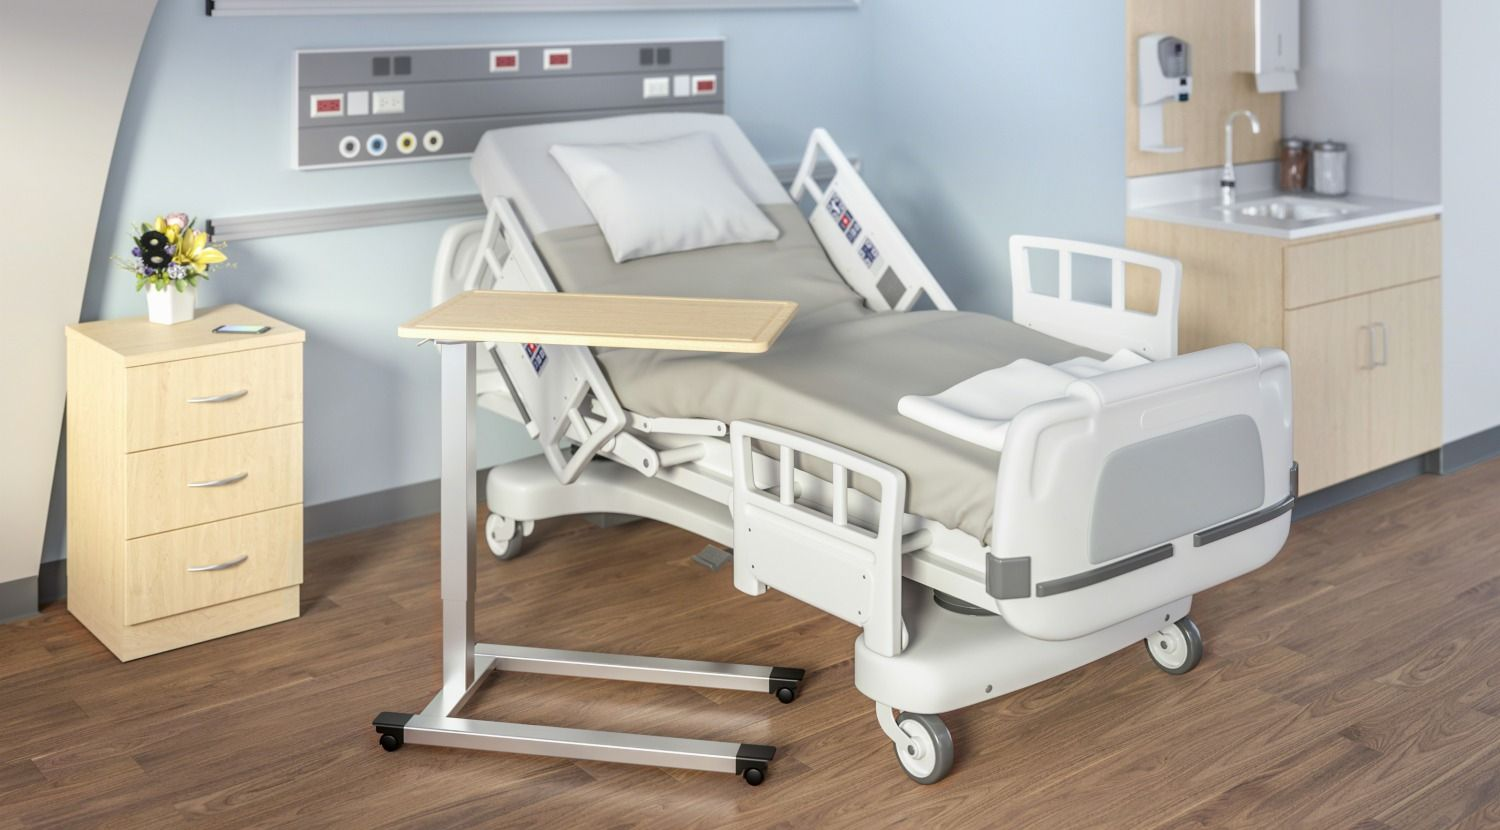 Overbed Tables (With images) Healthcare furniture